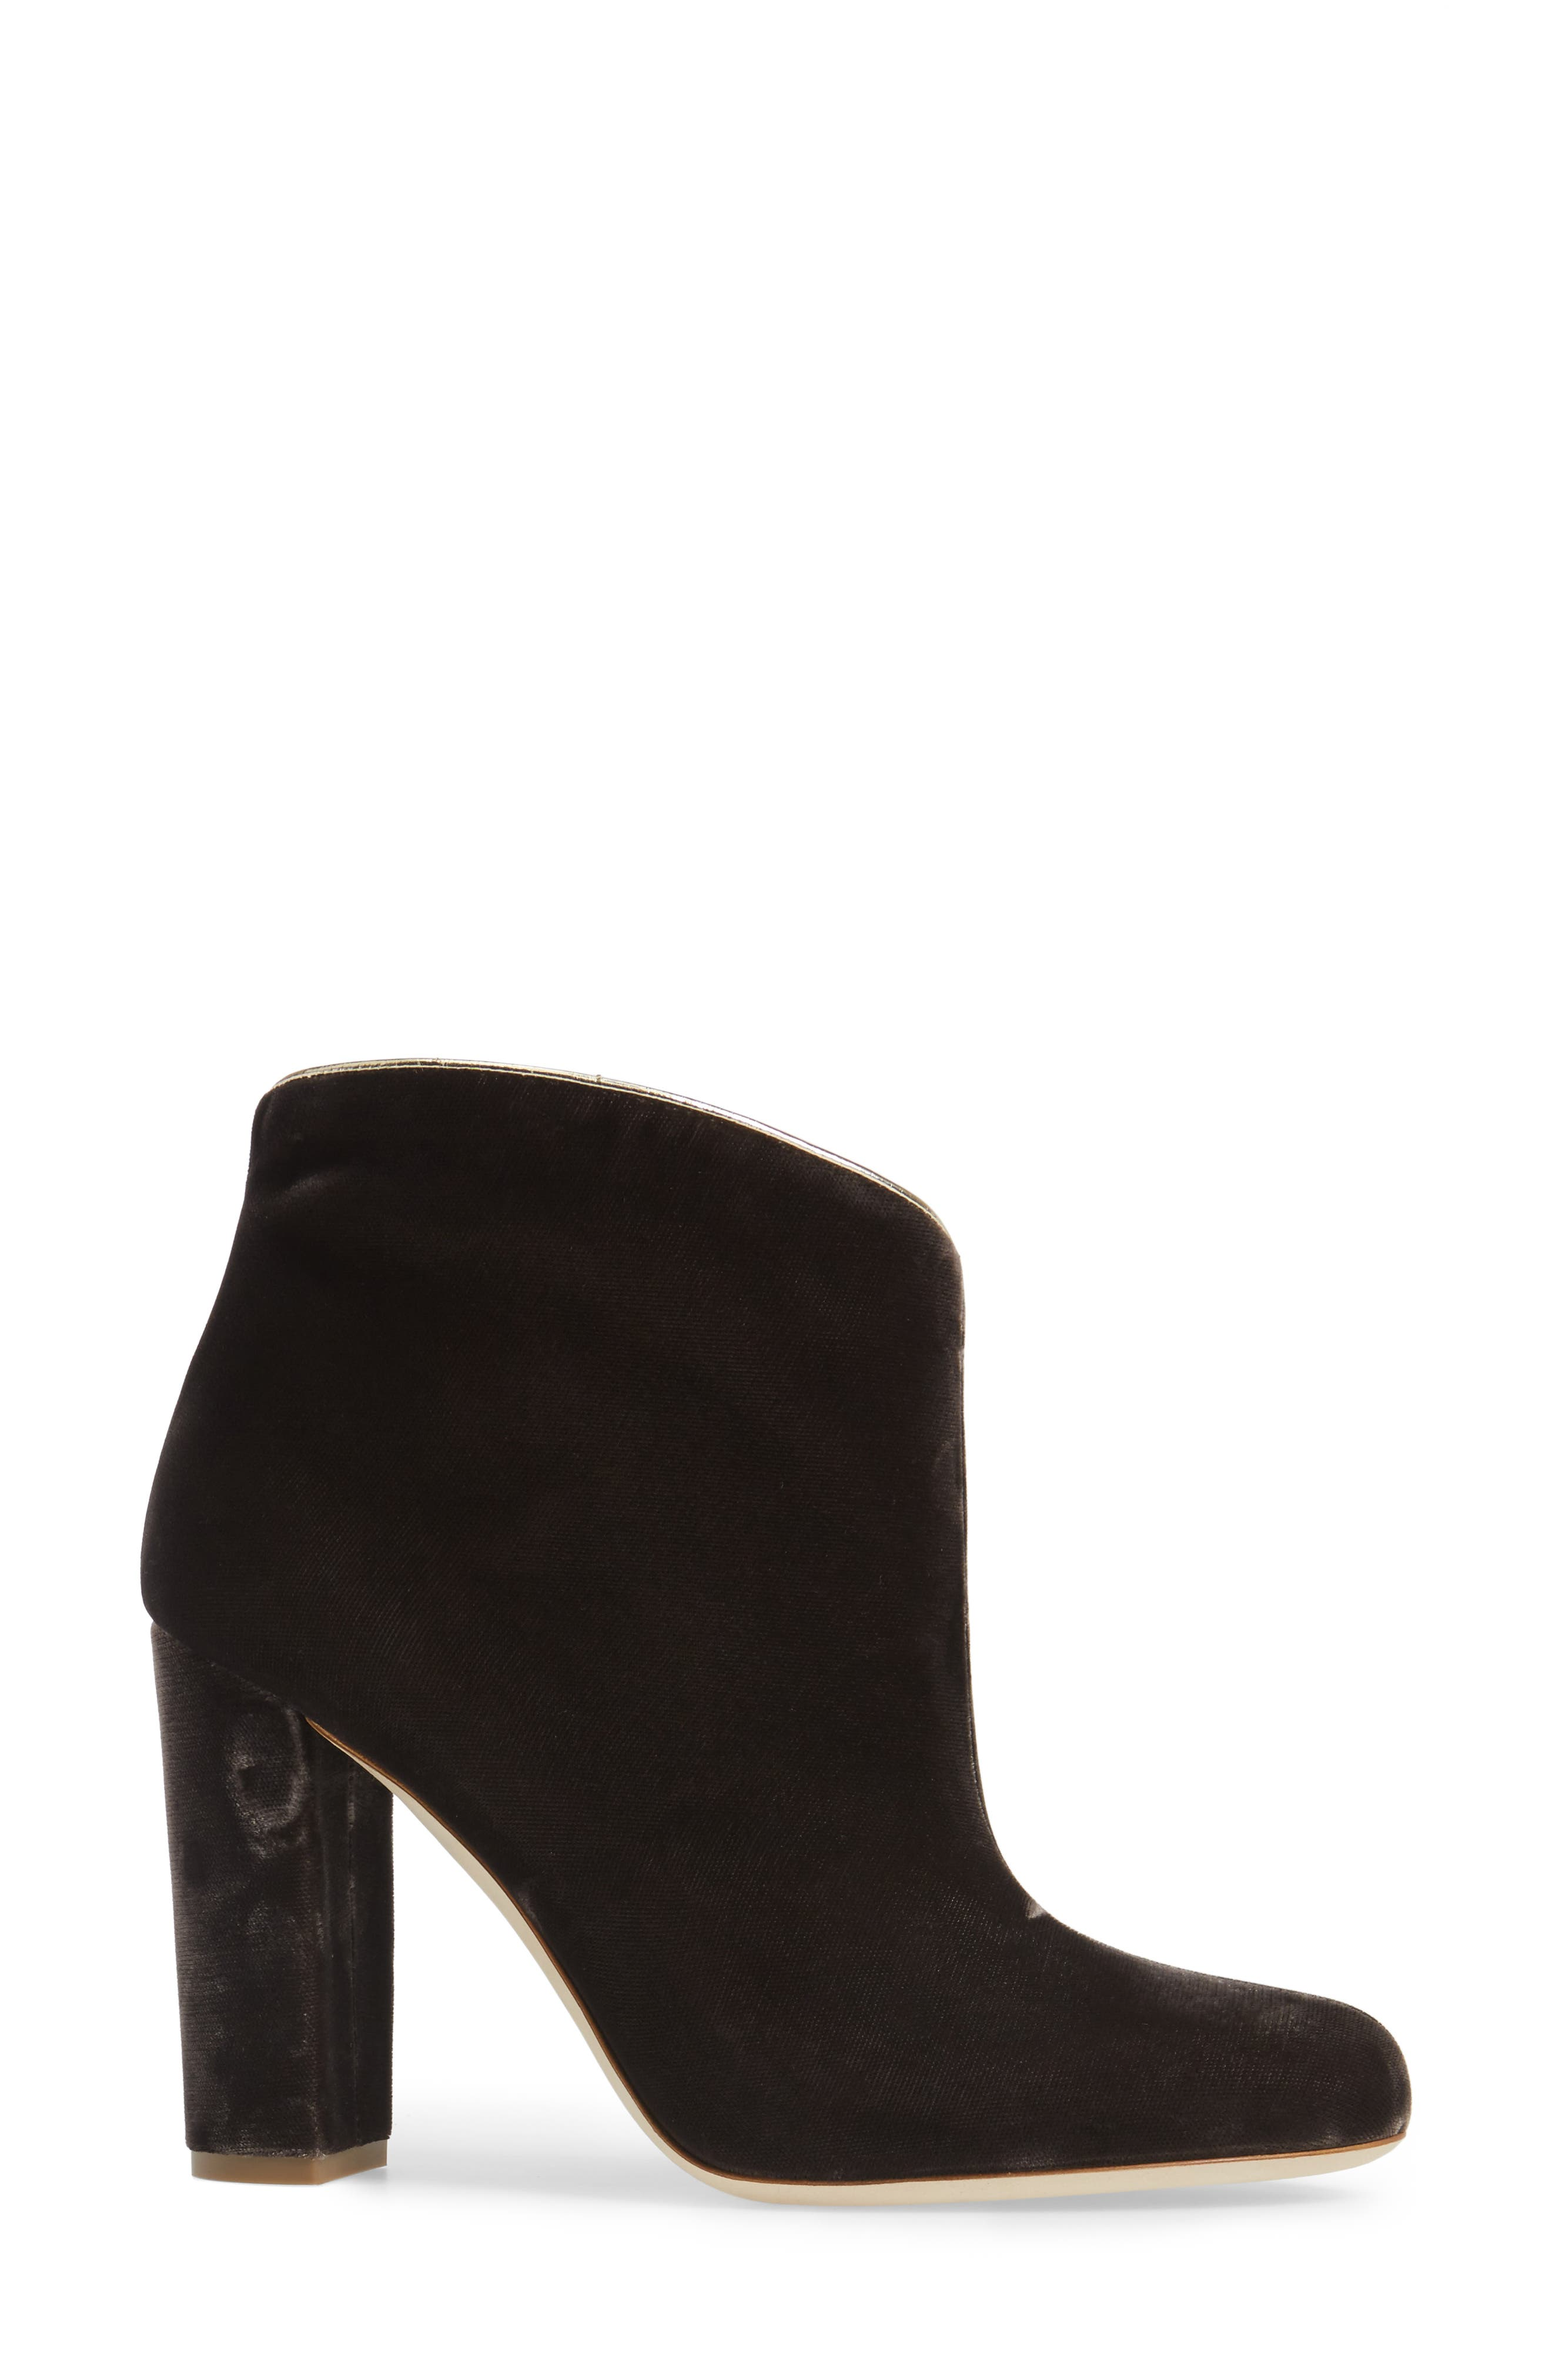 Malone Souliers Eula Bootie,                             Alternate thumbnail 3, color,                             020